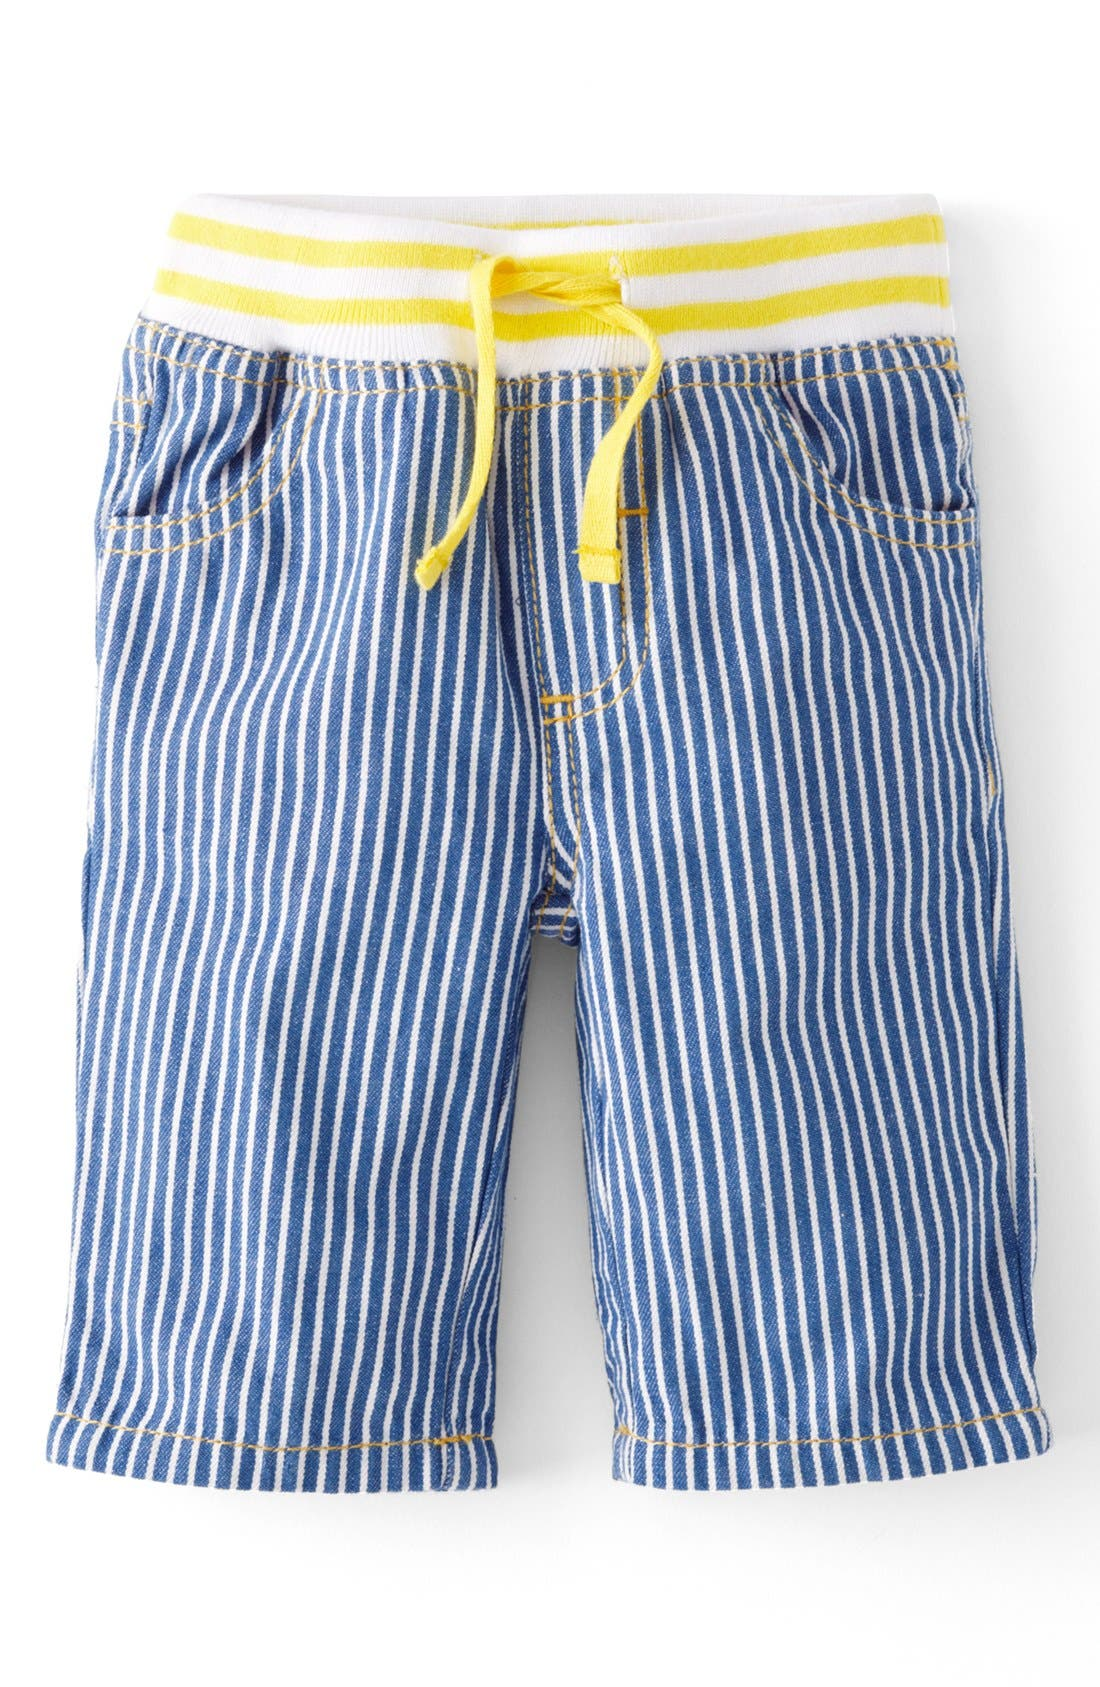 Alternate Image 1 Selected - Mini Boden Straight Leg Jeans (Baby Boys)